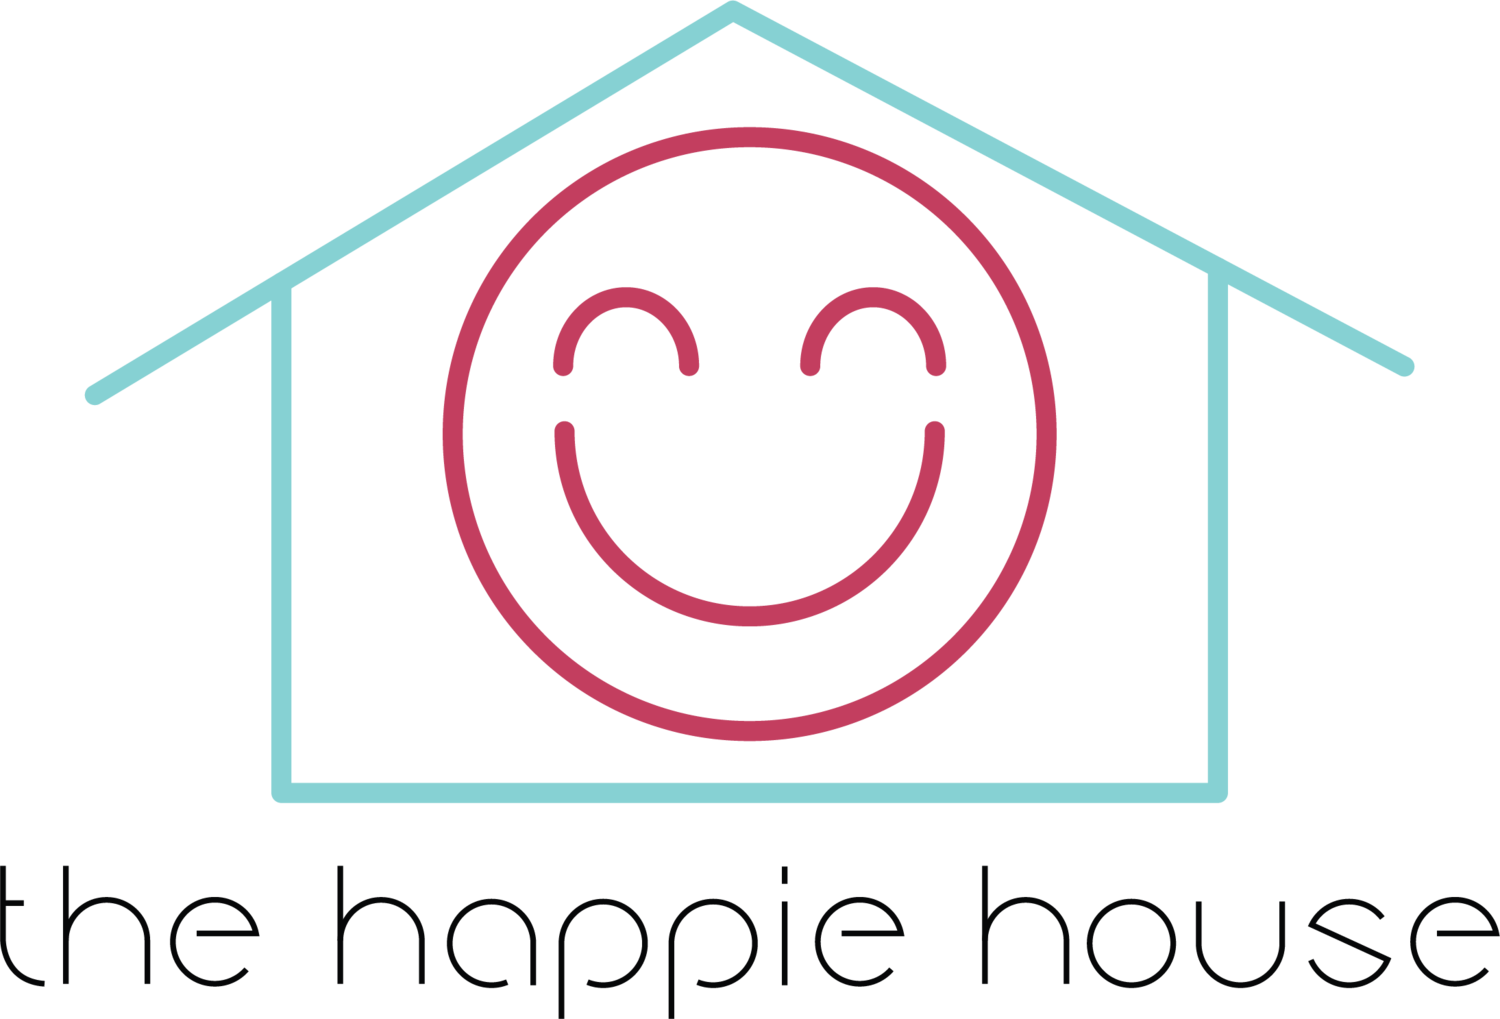 The Happie House